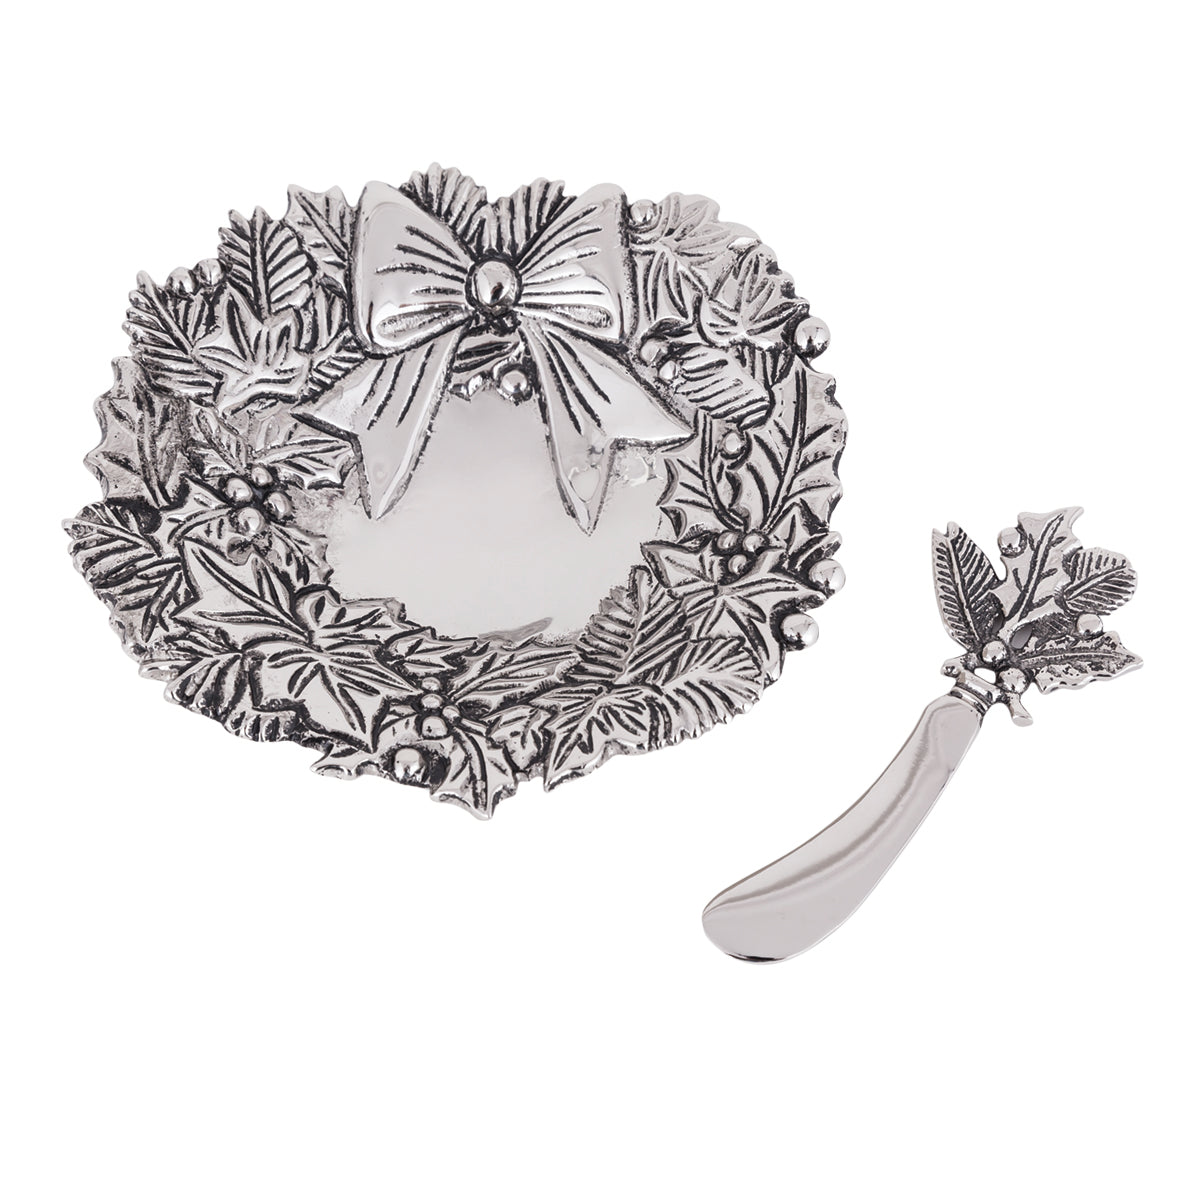 Table Accents Wreath Dip Dish w/ Spreader